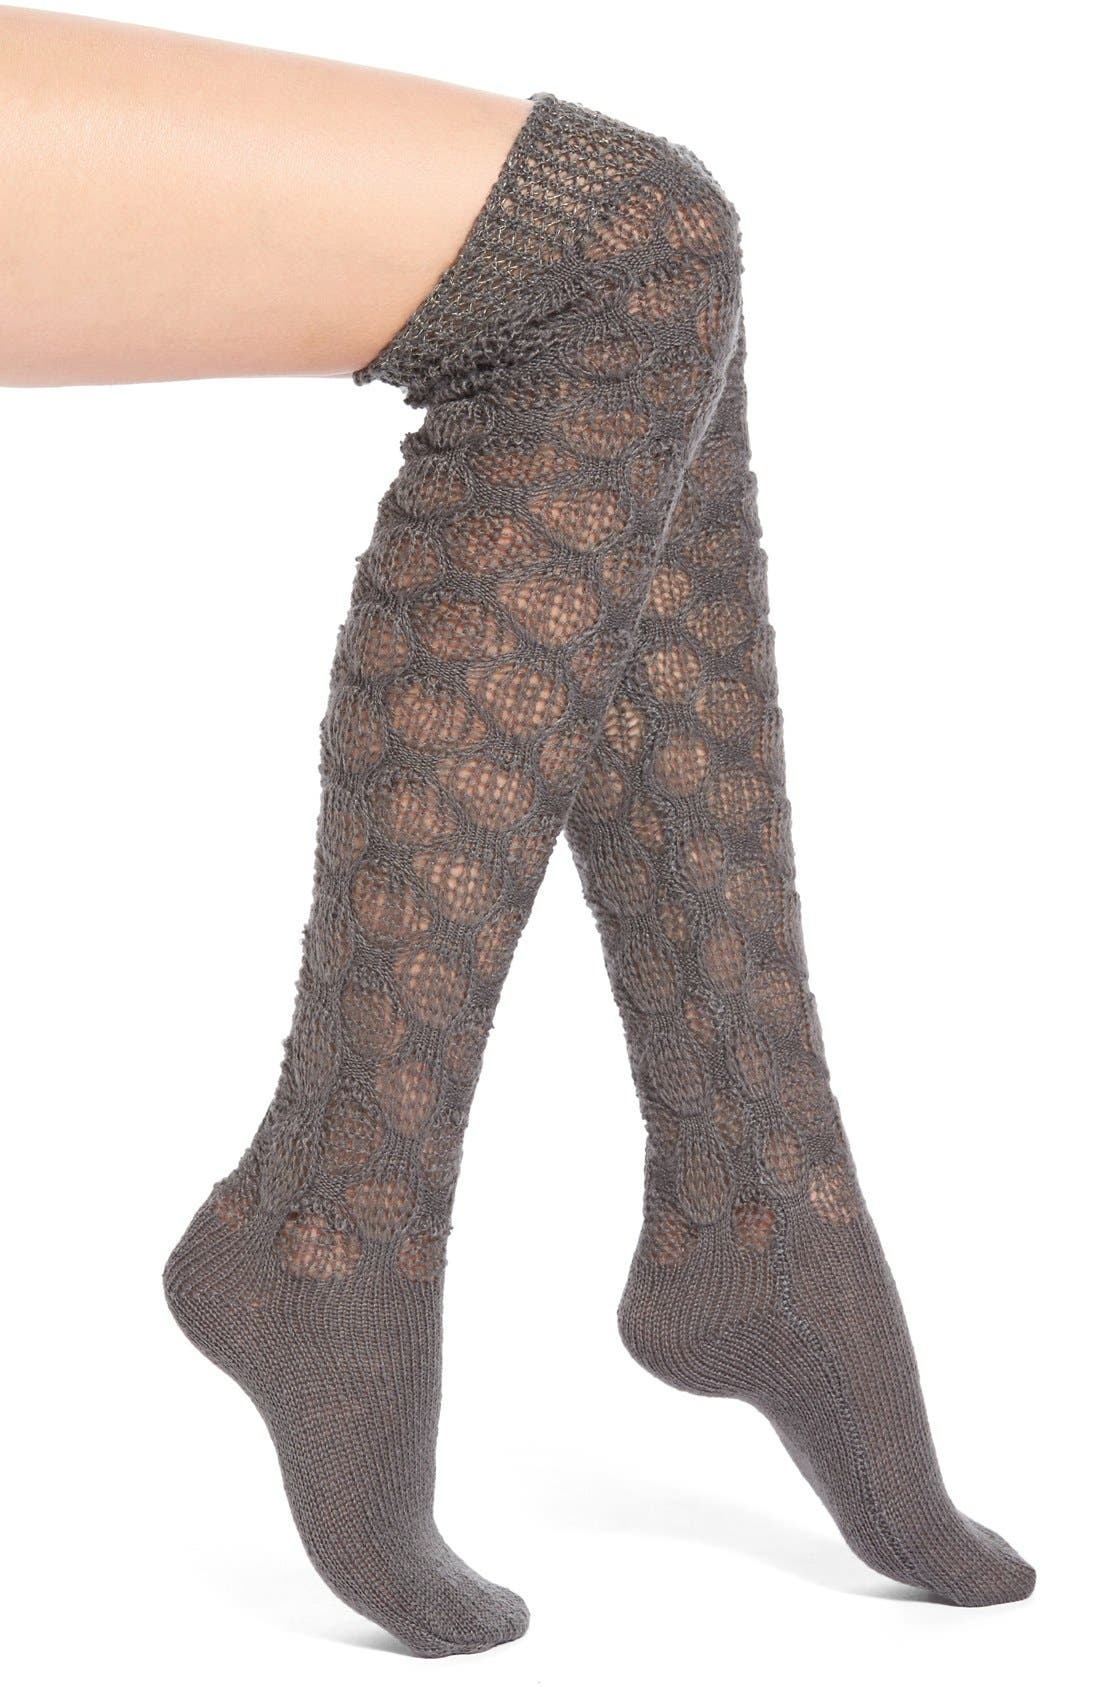 'Frosted' Crochet Over the Knee Socks,                         Main,                         color, Peppercorn